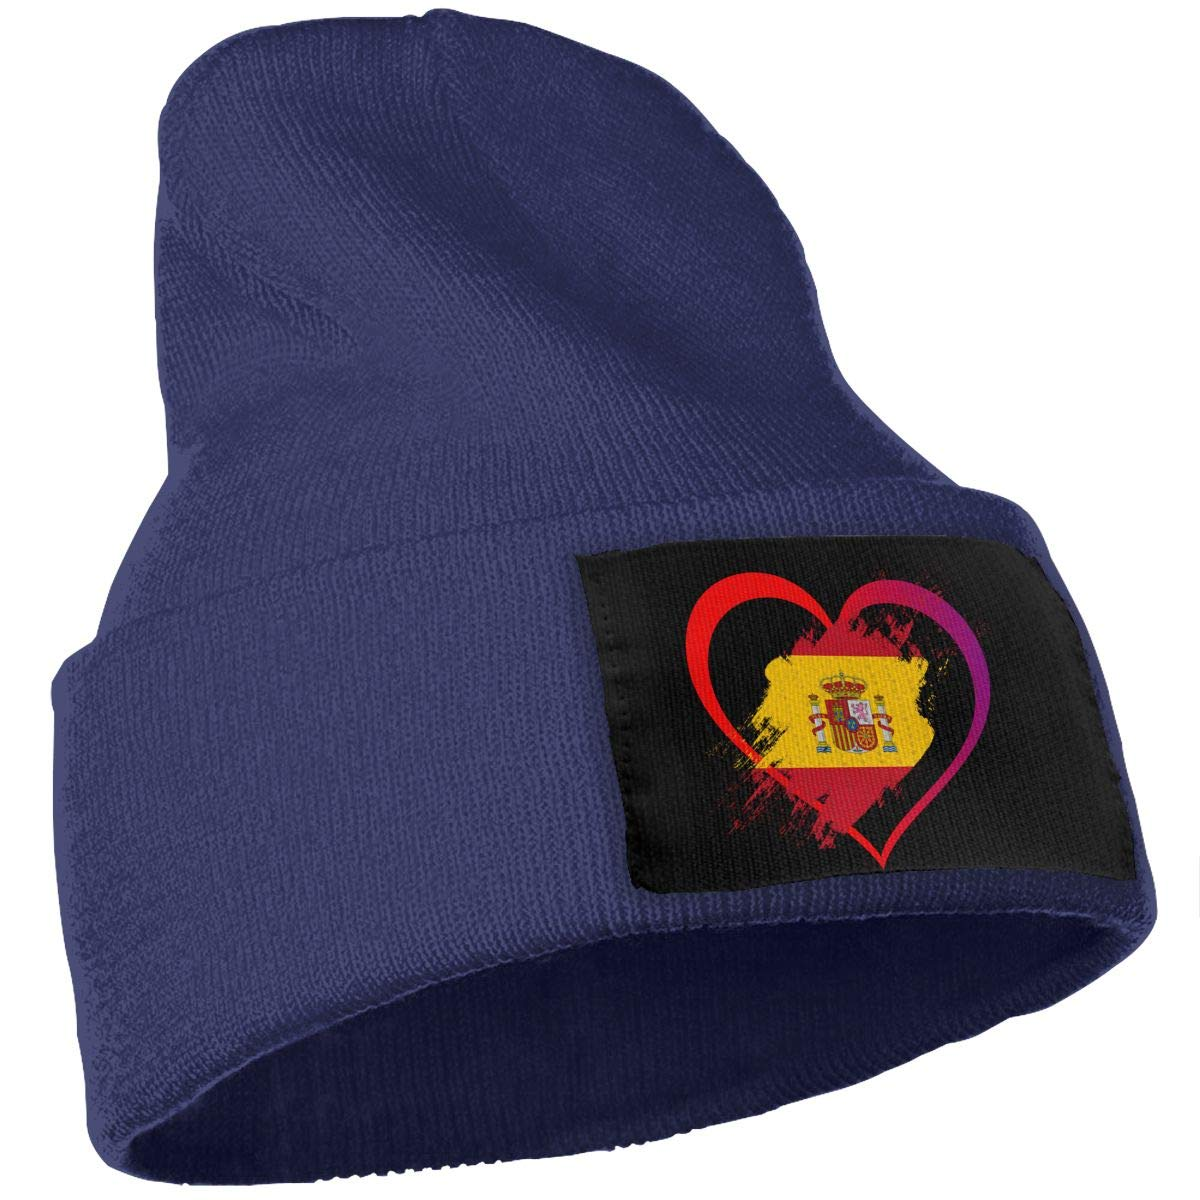 Heart Shaped Flag of Spain Fashion Skull Cap WHOO93@Y Mens Womens 100/% Acrylic Knit Hat Cap